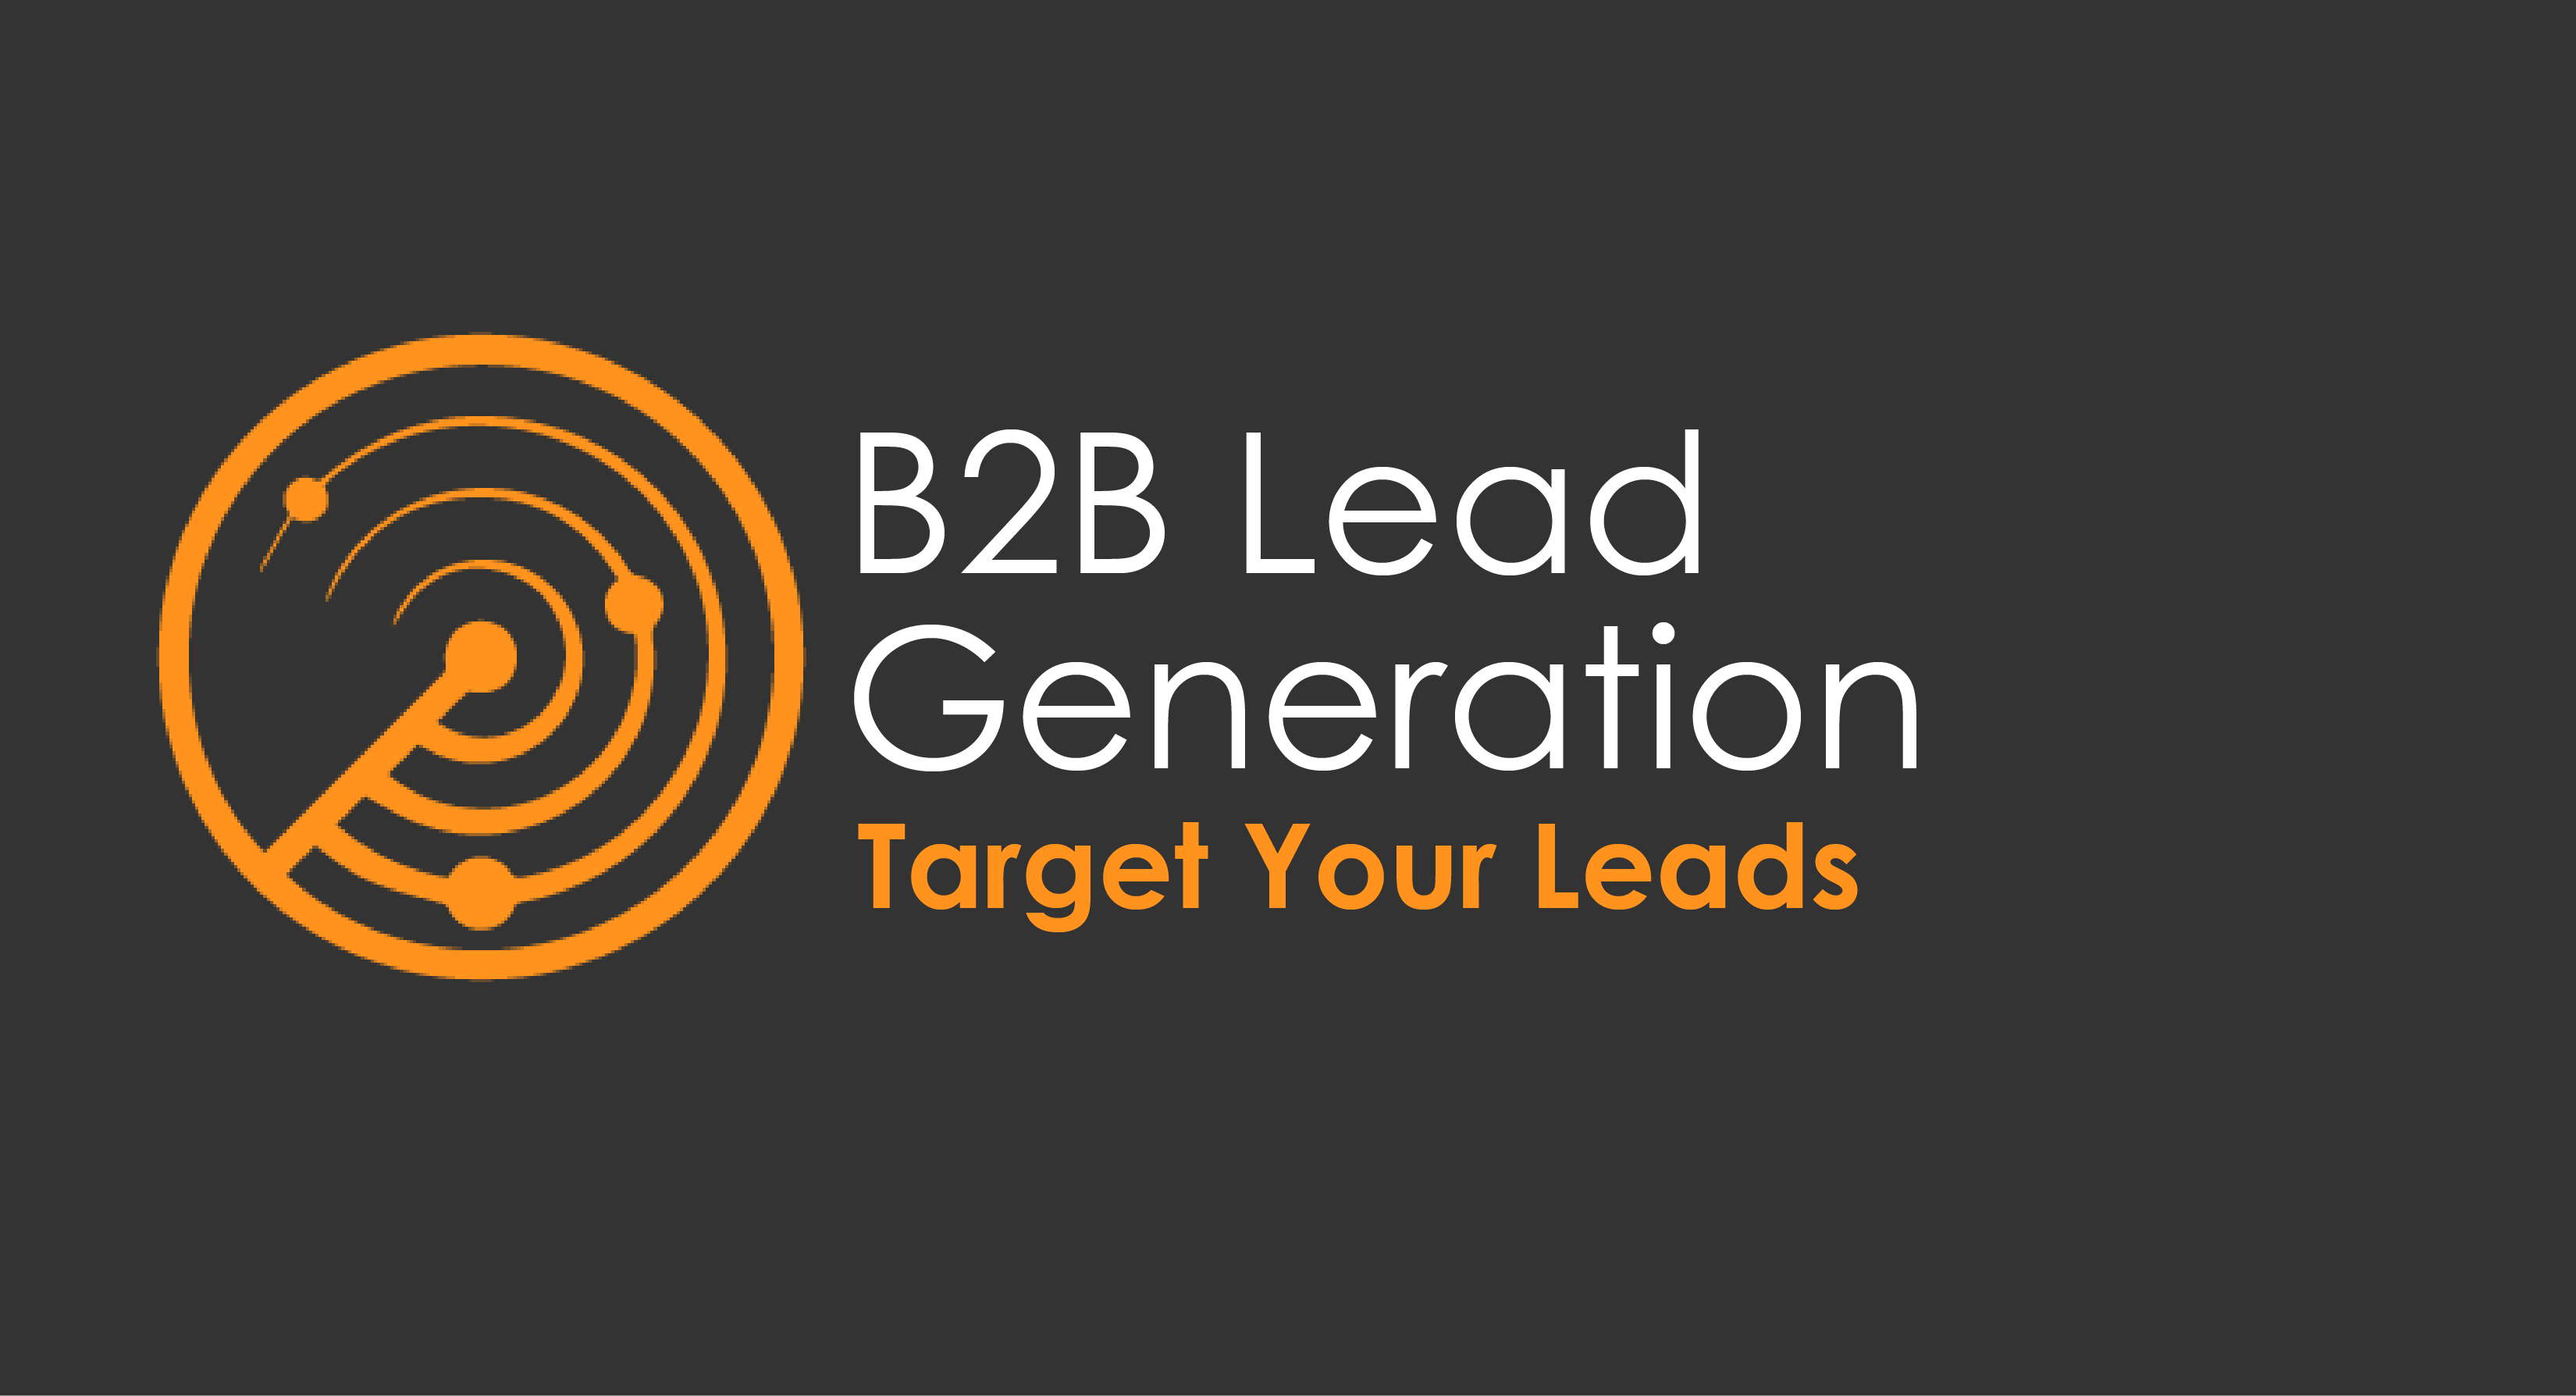 B2B Lead Generation Companies: Challenges and Solutions